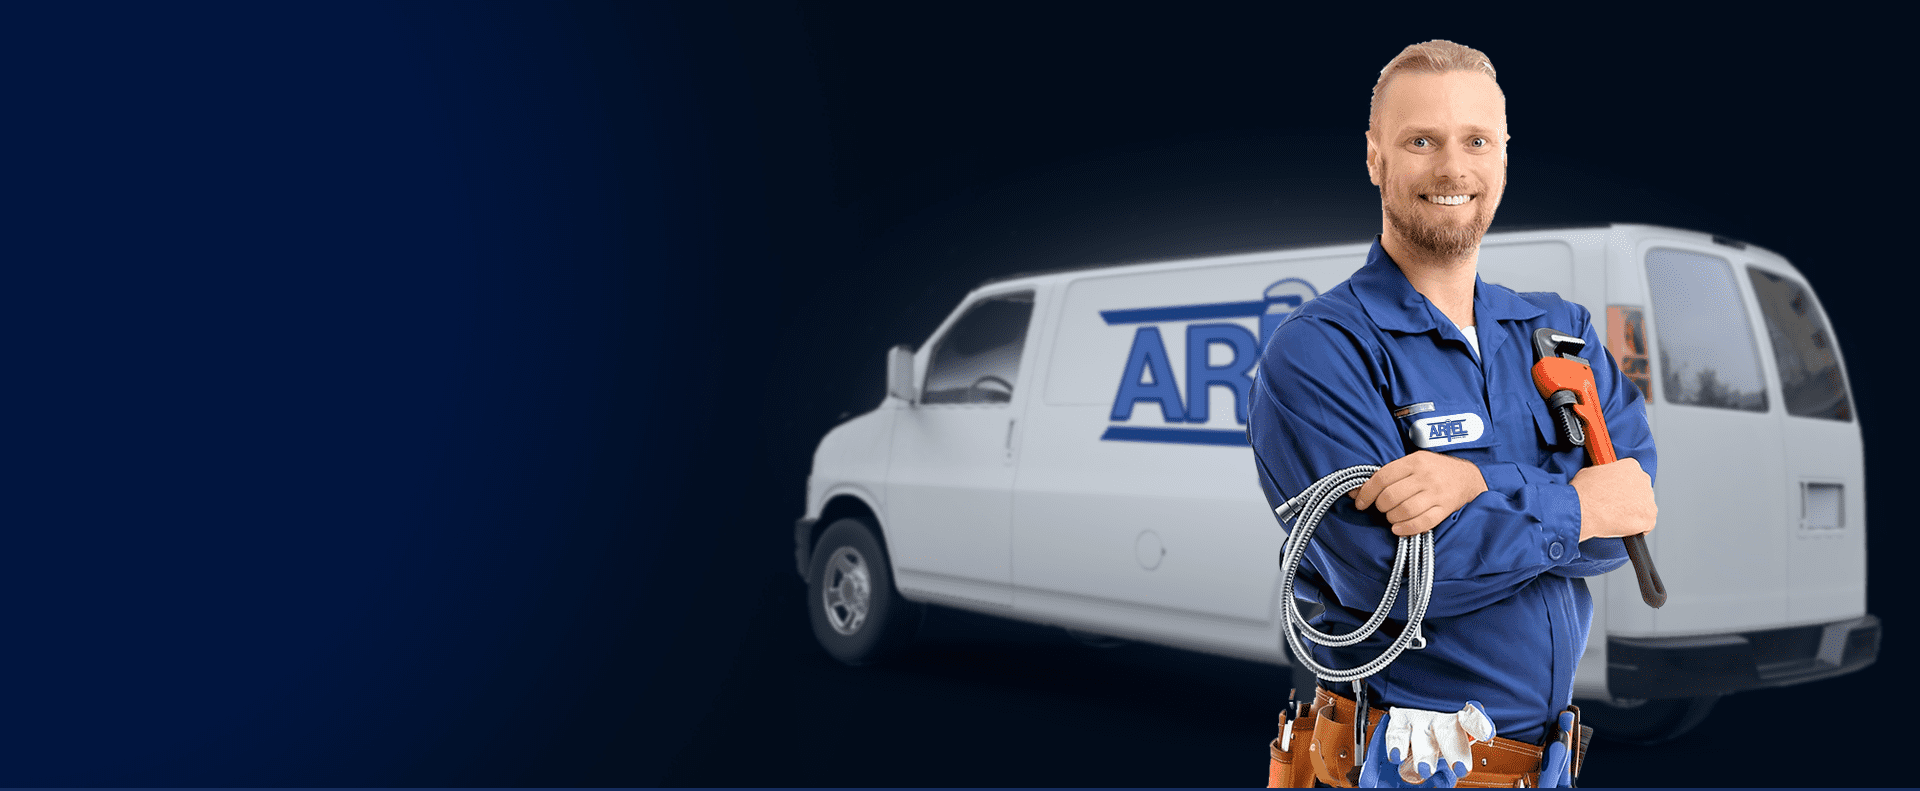 Ariel Services, Inc. - Plumbers